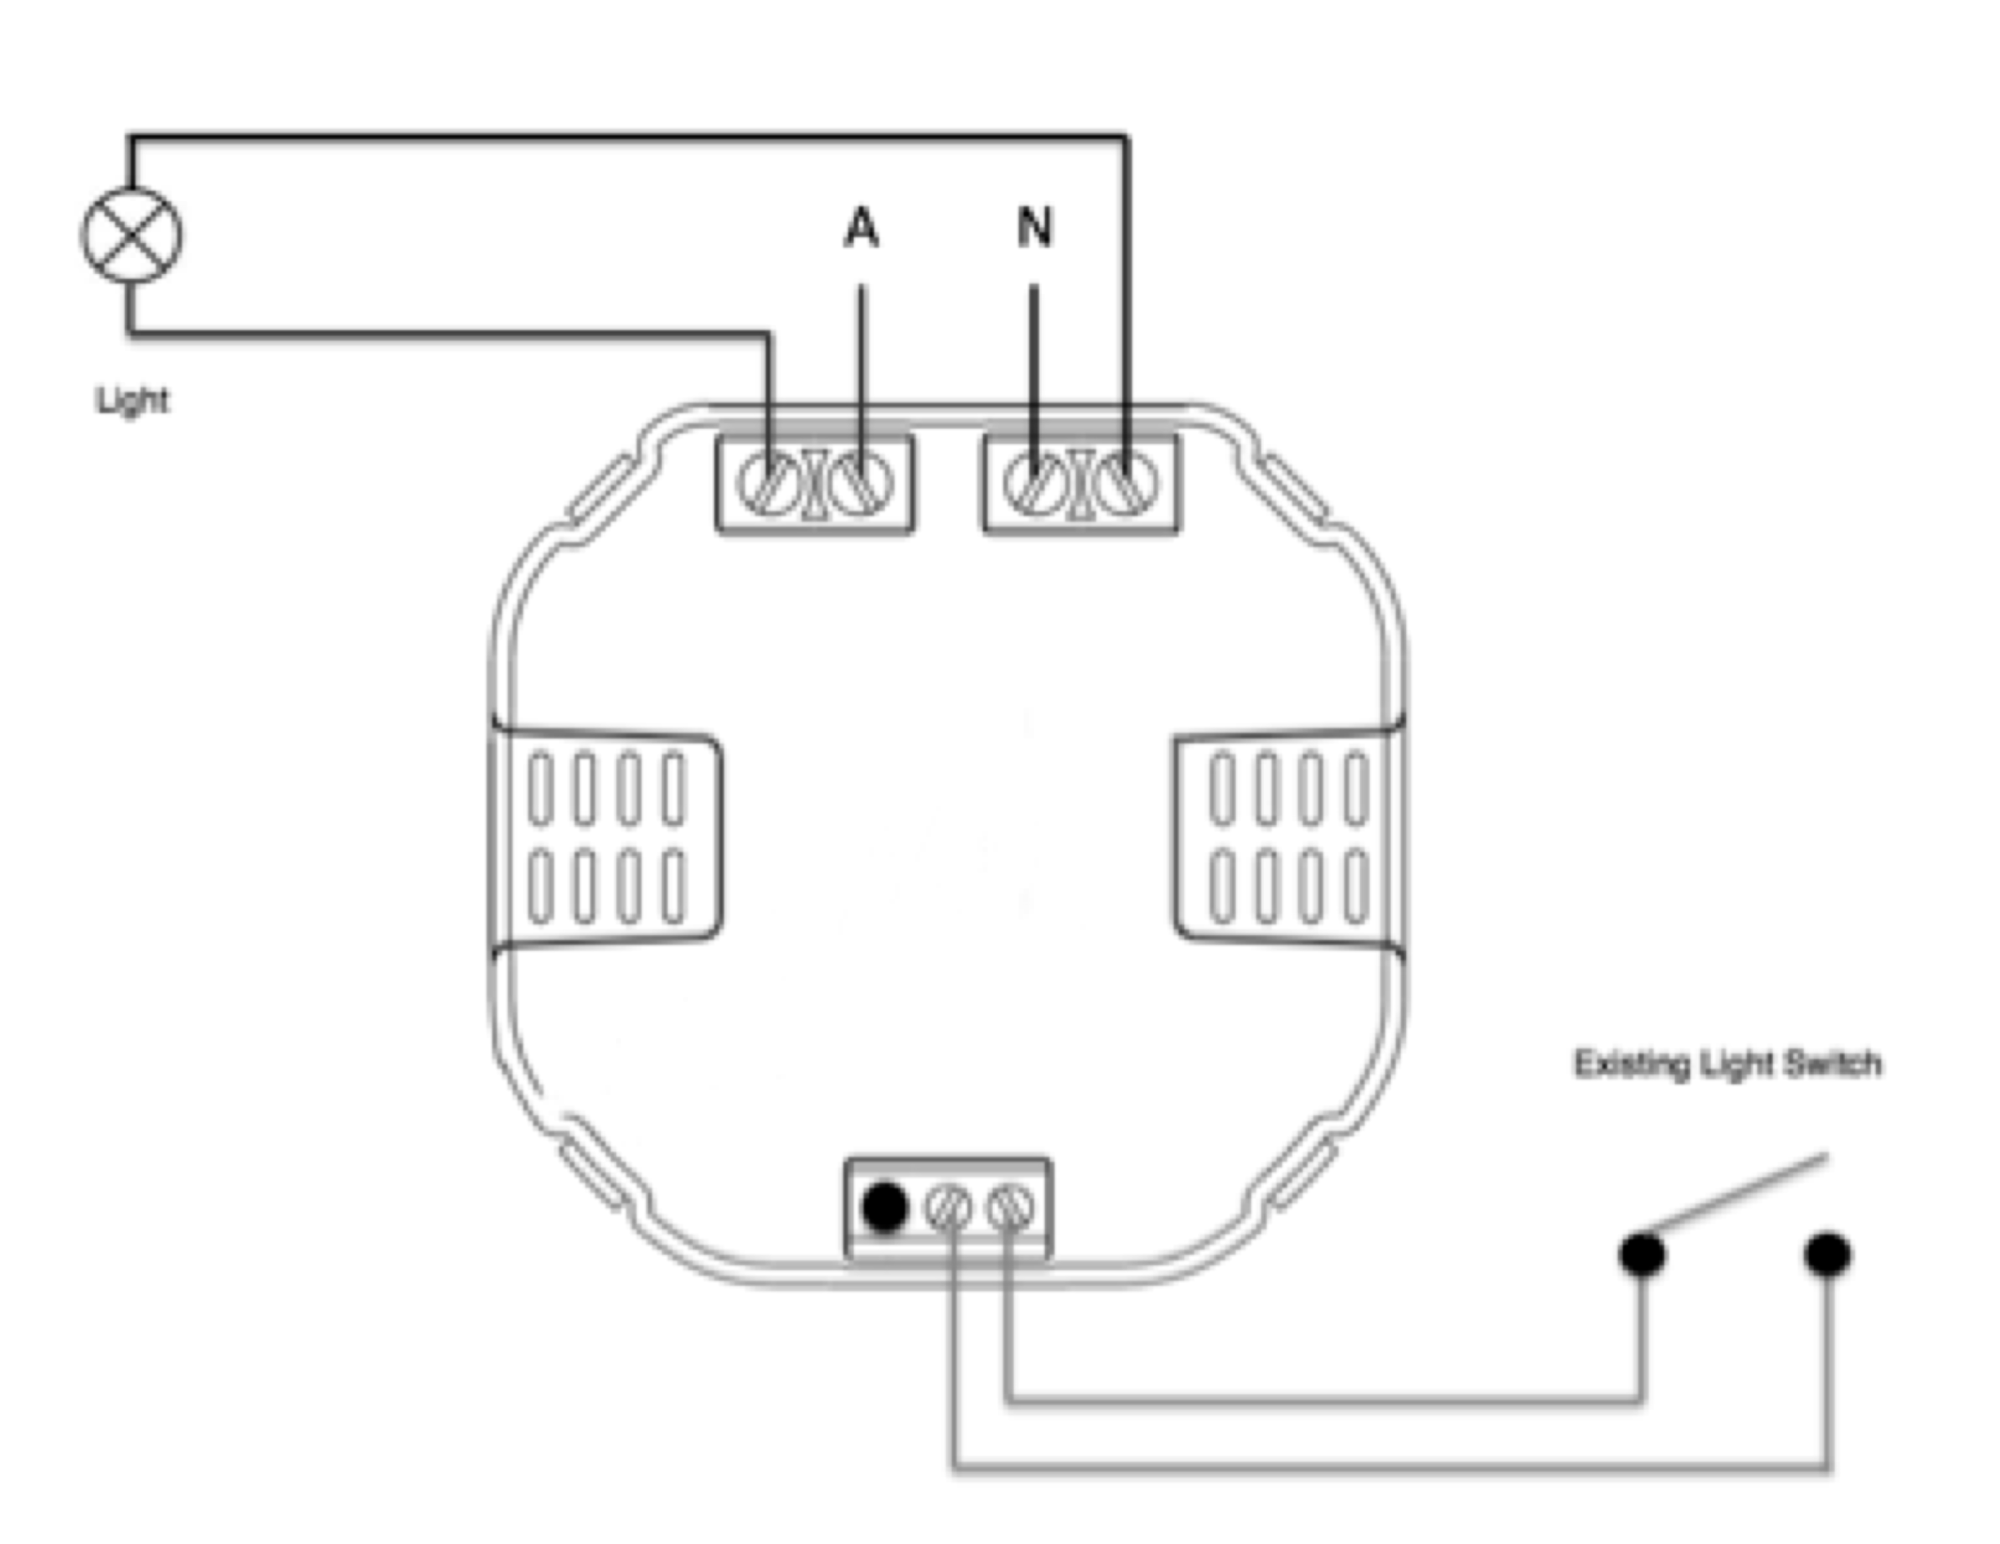 hight resolution of line active red wire connect to live terminal of nexus relay